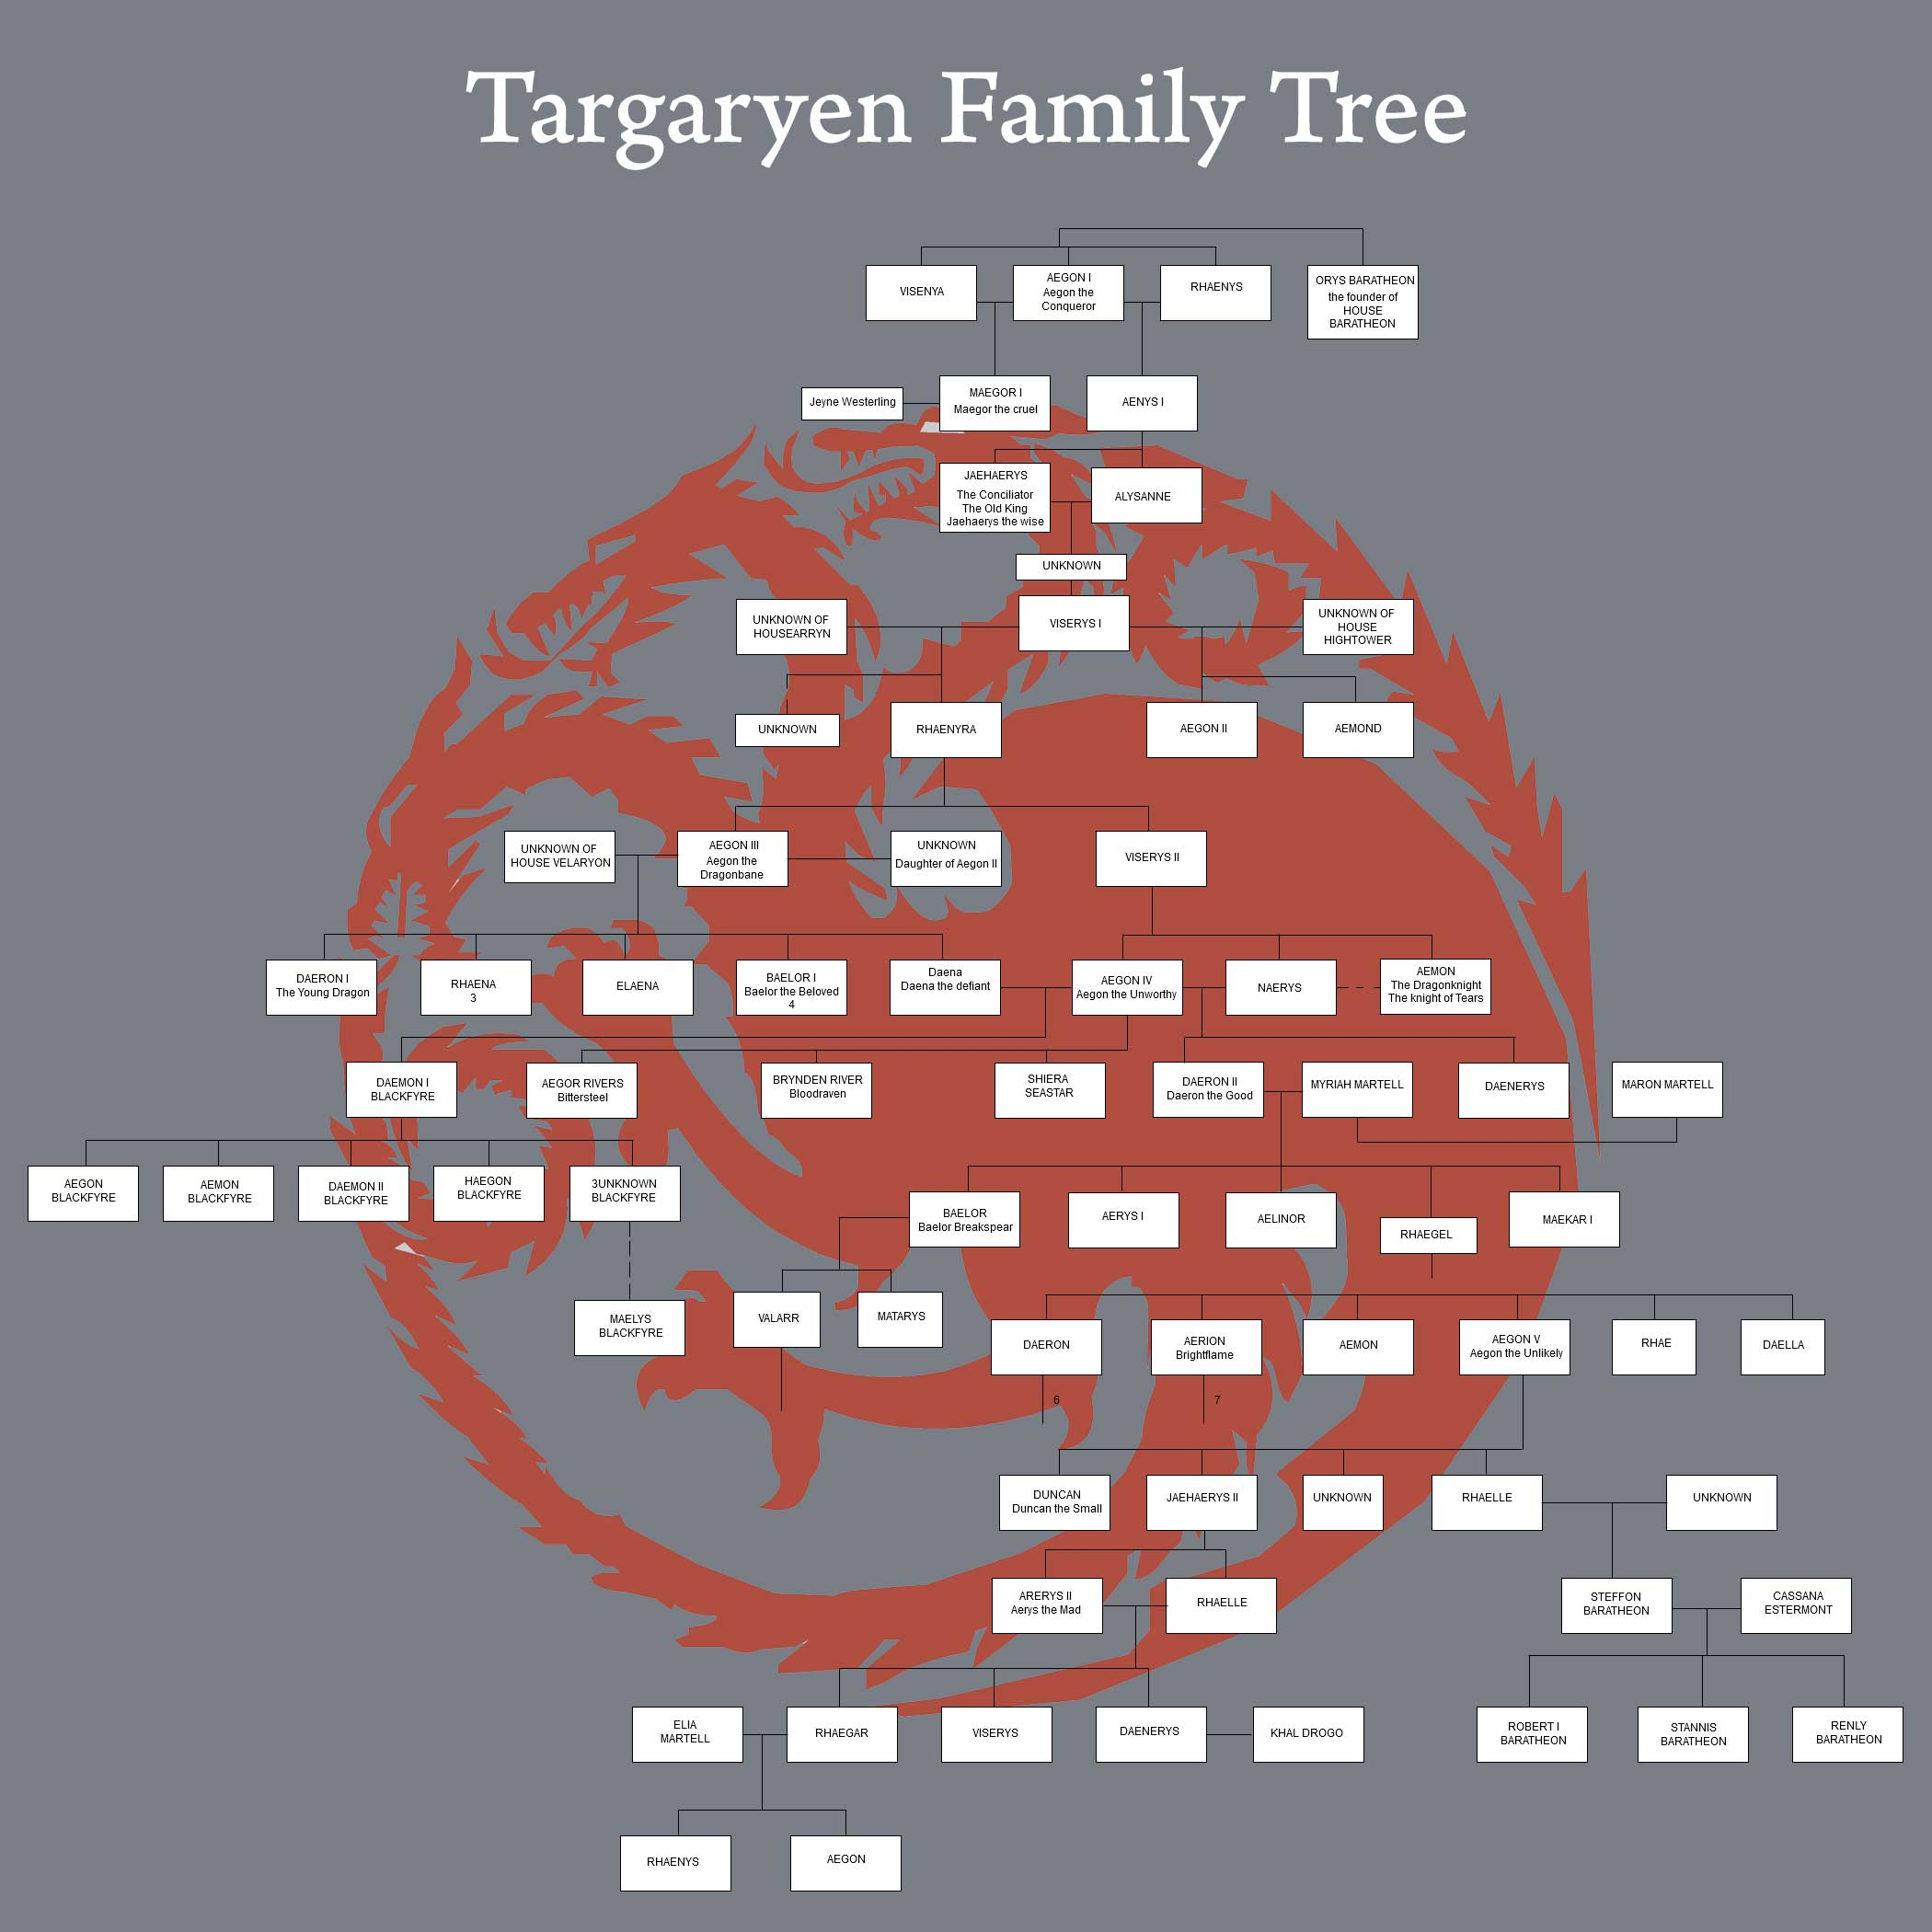 Targaryen Family Tree A Look At One Of The Largest Game